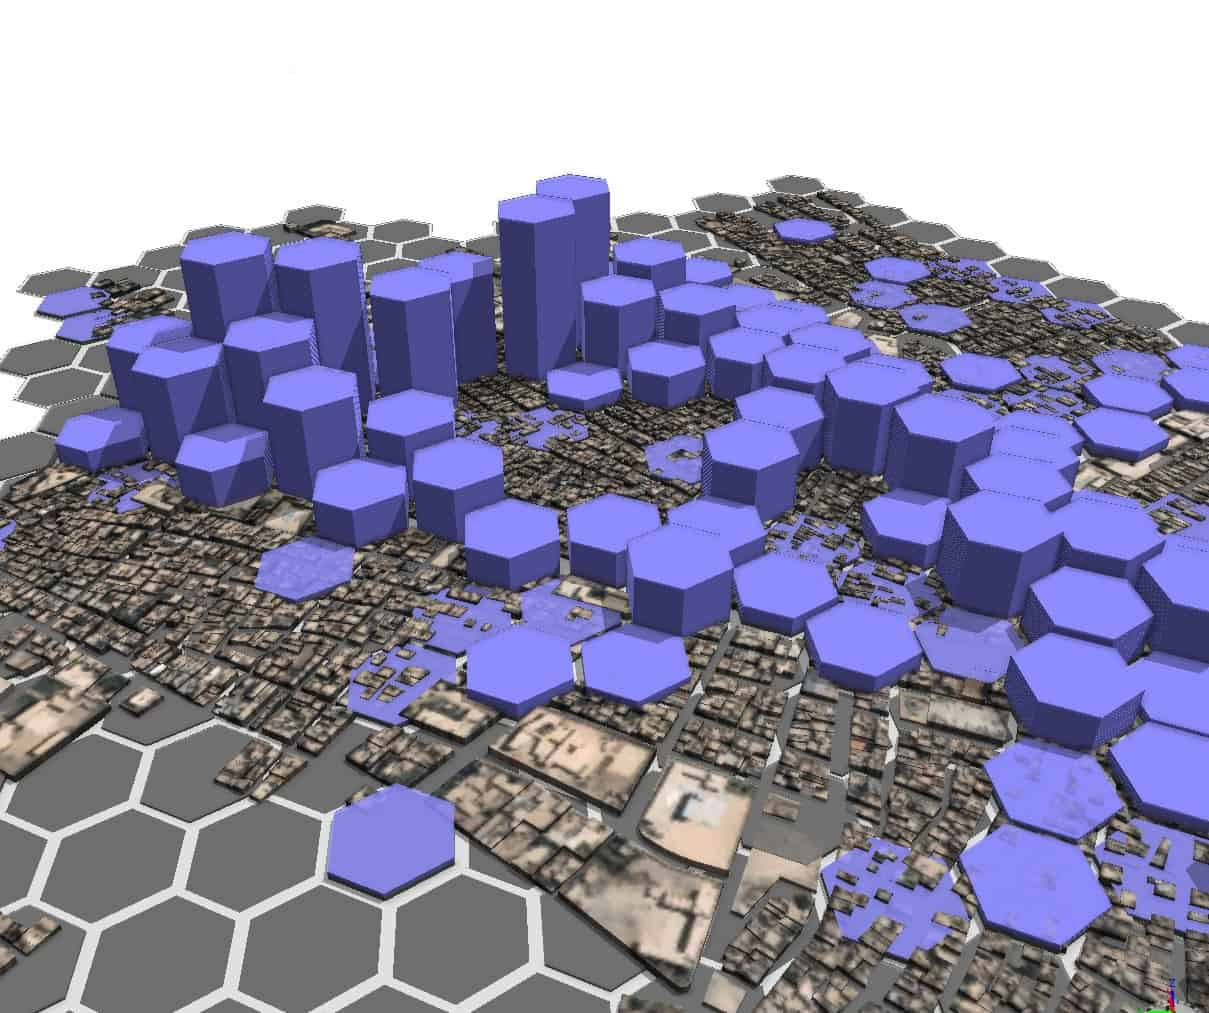 Hexagons are the only way to visualise this stuff honestly... :)